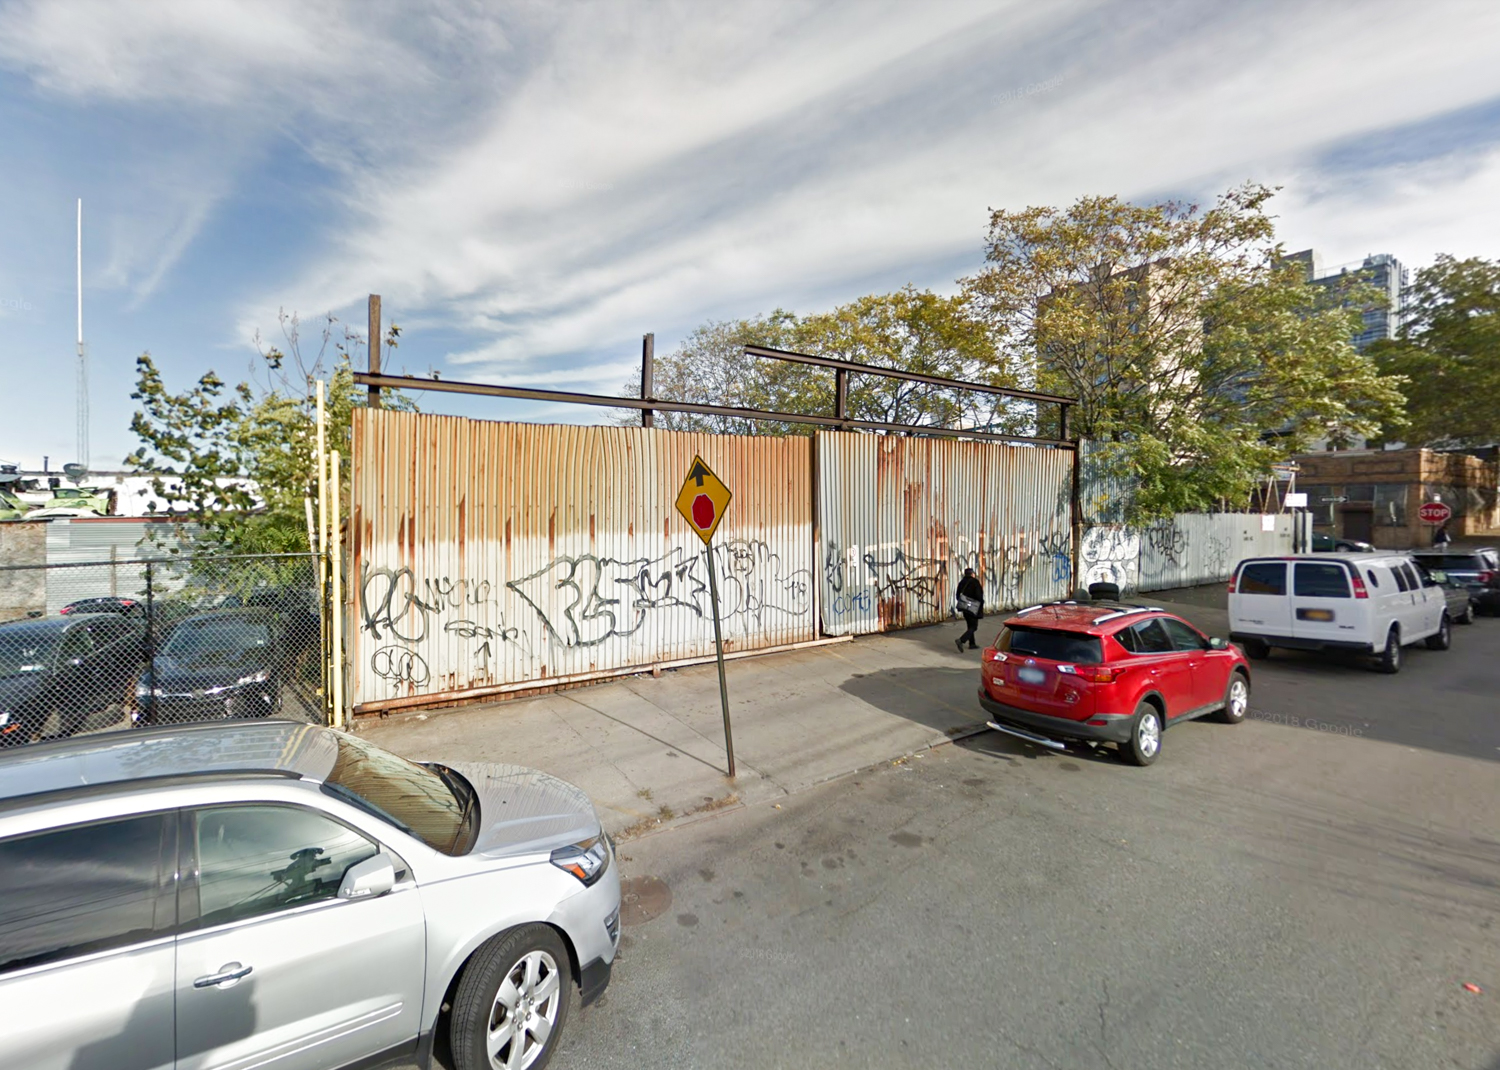 23-15 39th Avenue, via Google Maps